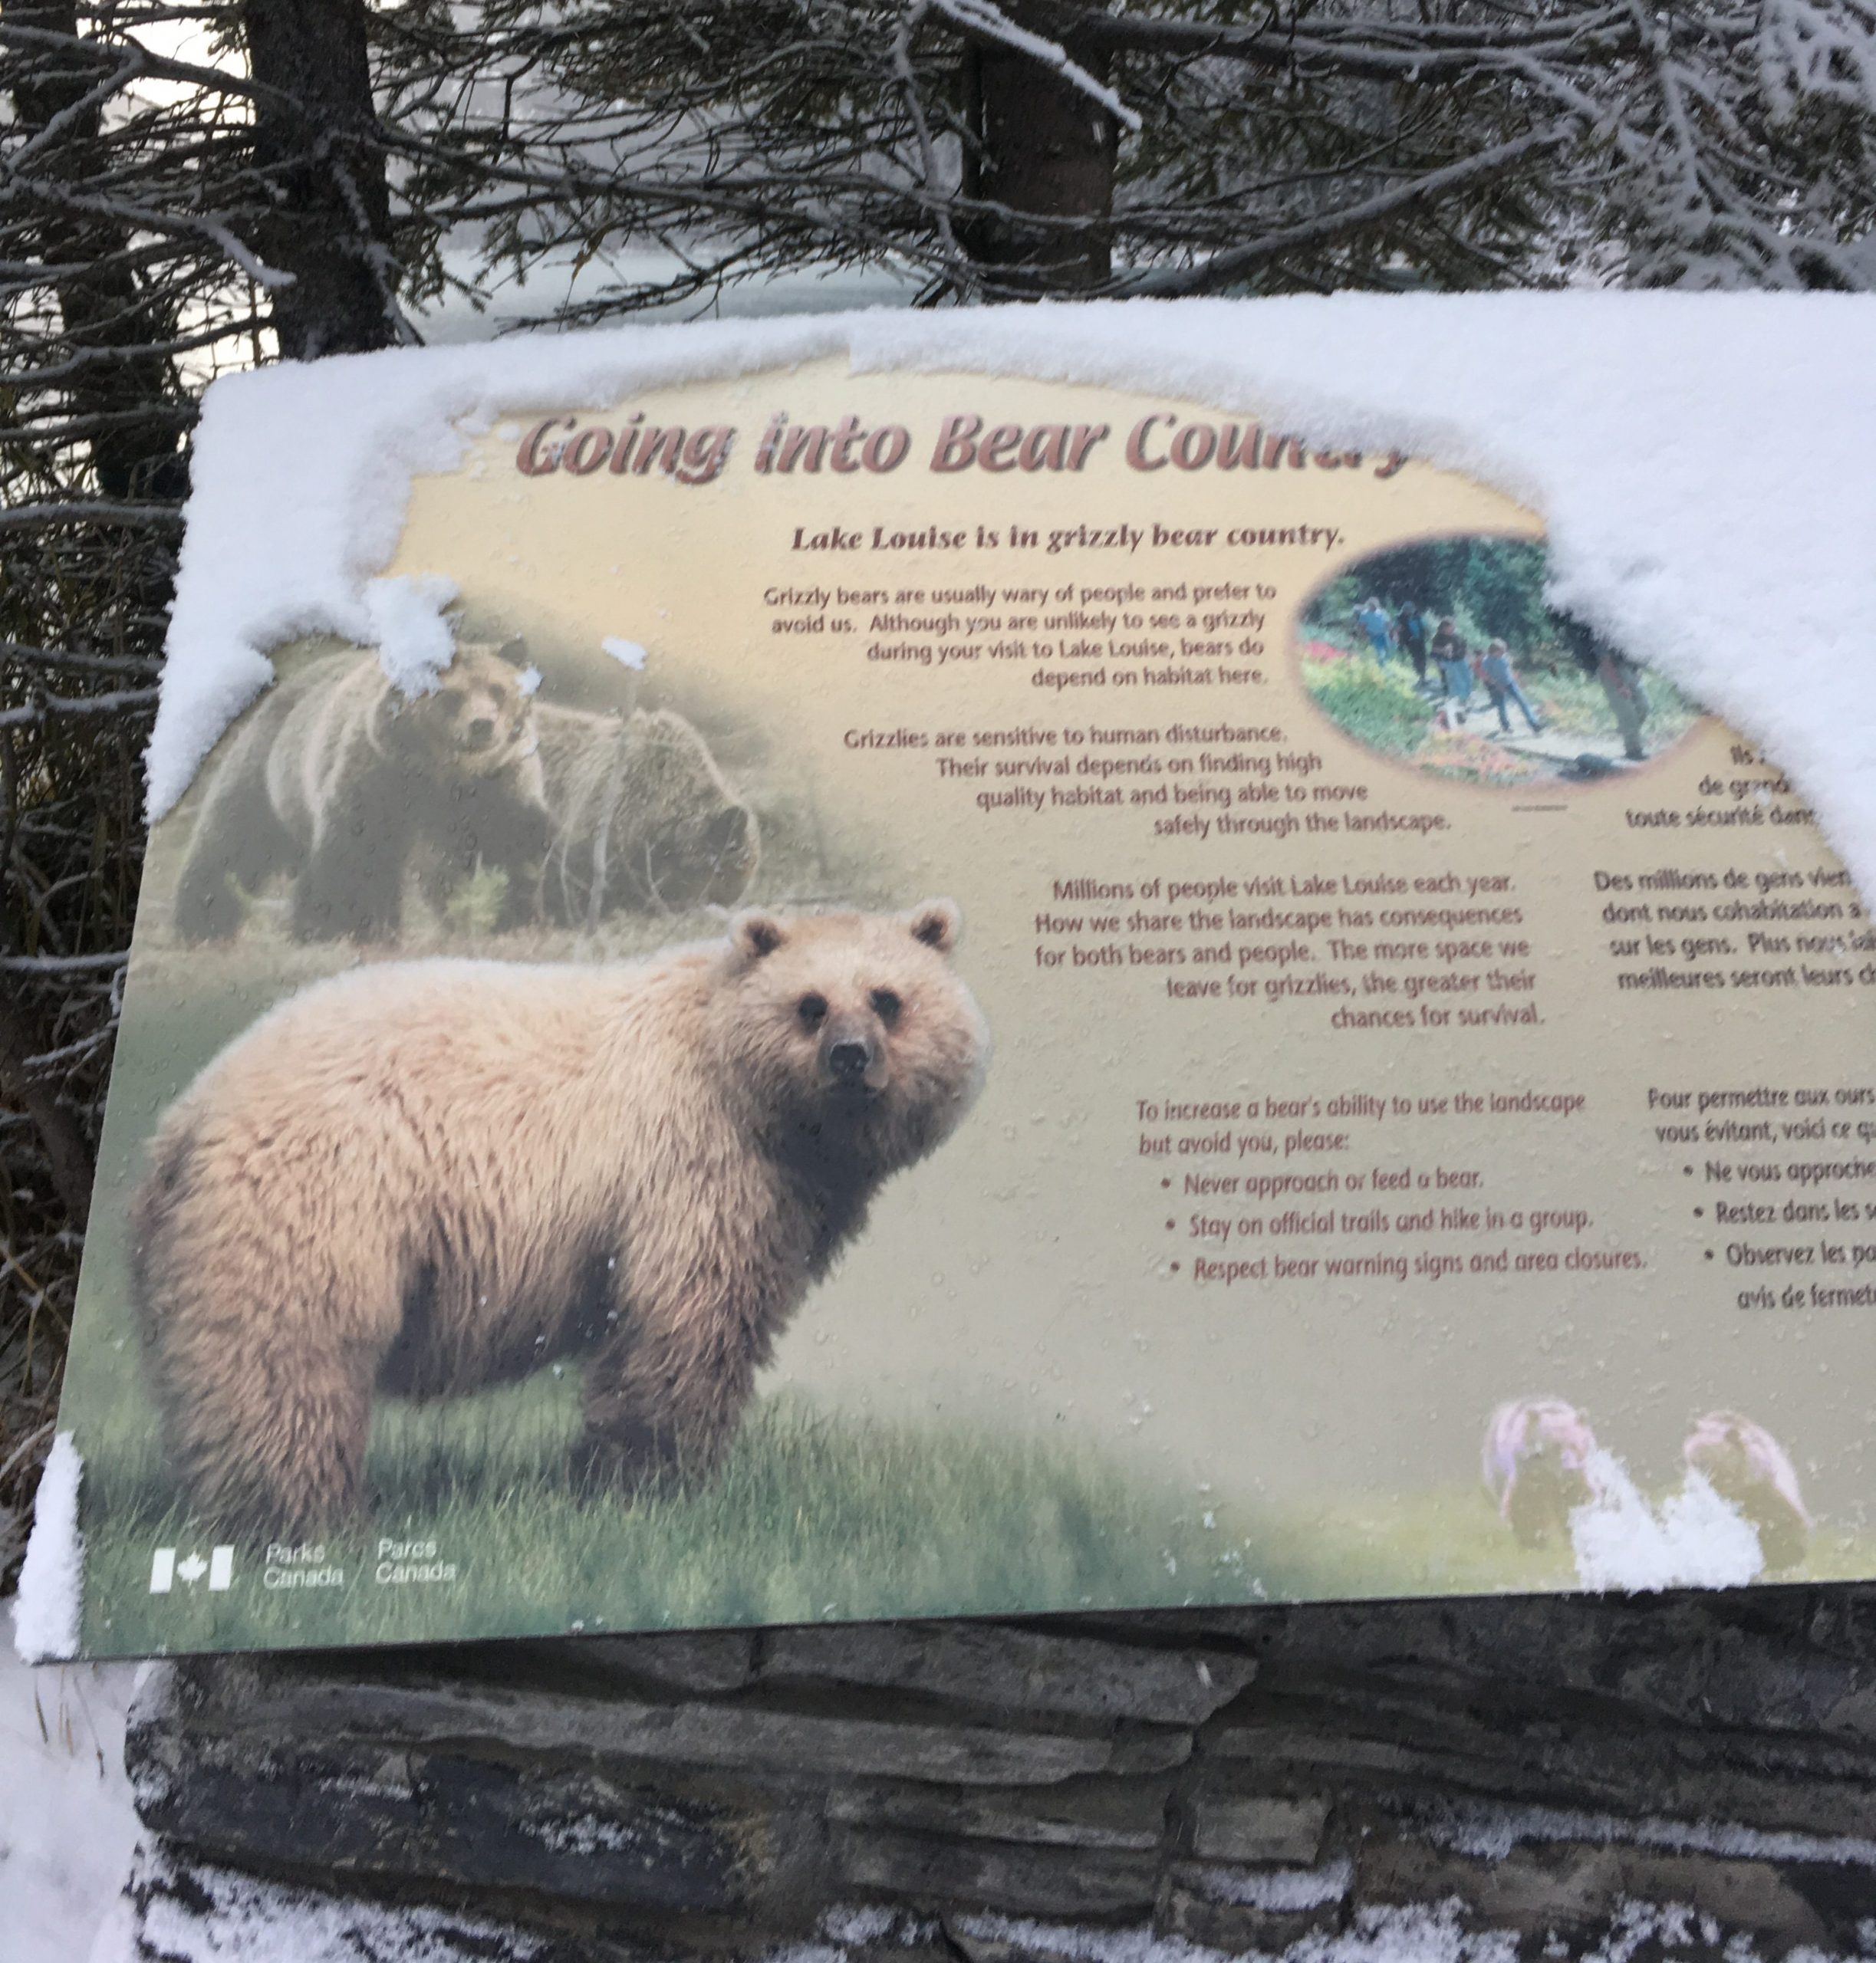 Yes, there are bears around Lake Louise.